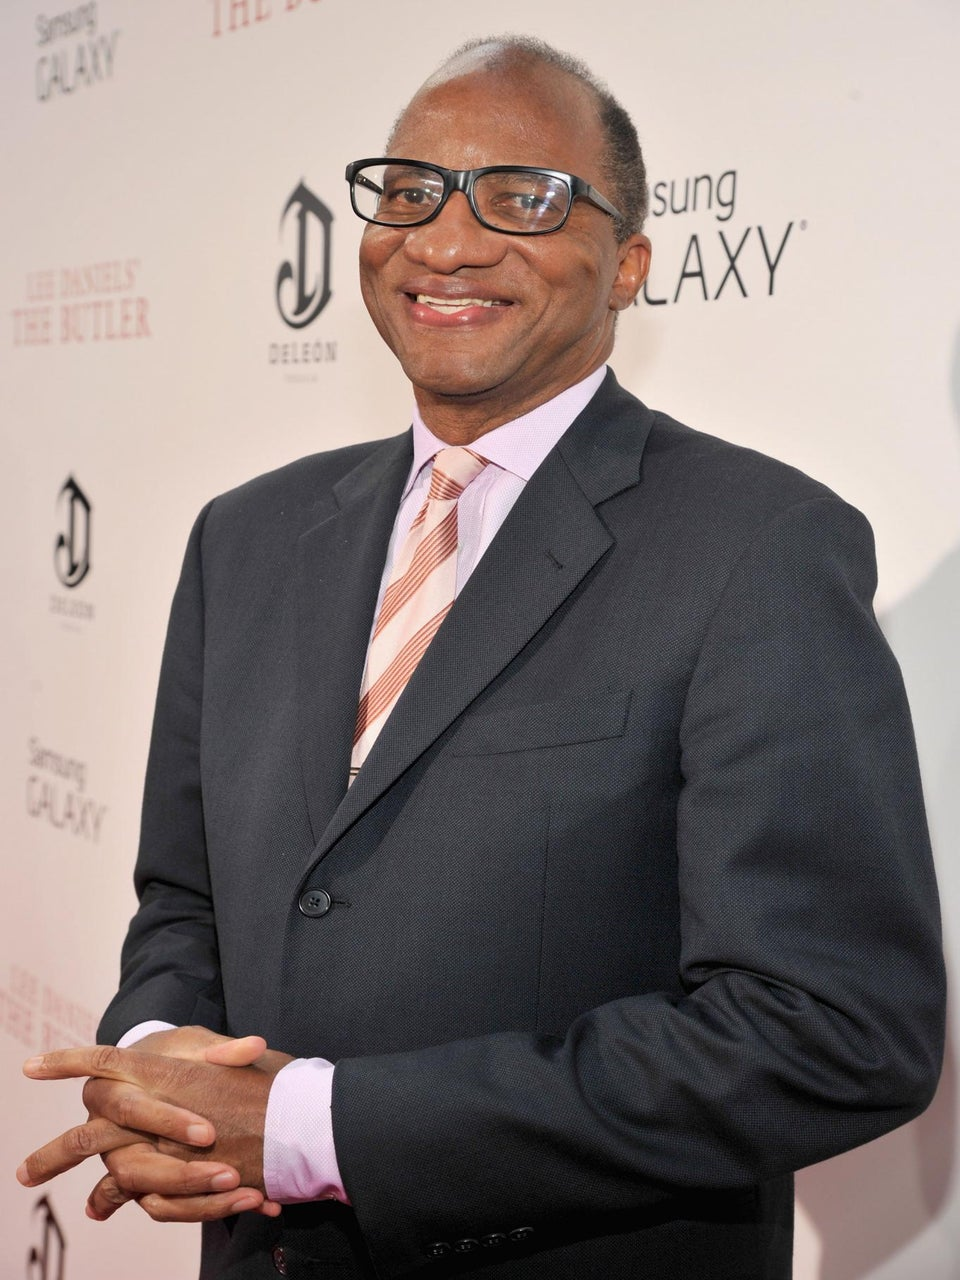 EXCLUSIVE: 5 Questions with Wil Haygood, The Man Behind 'The Butler'